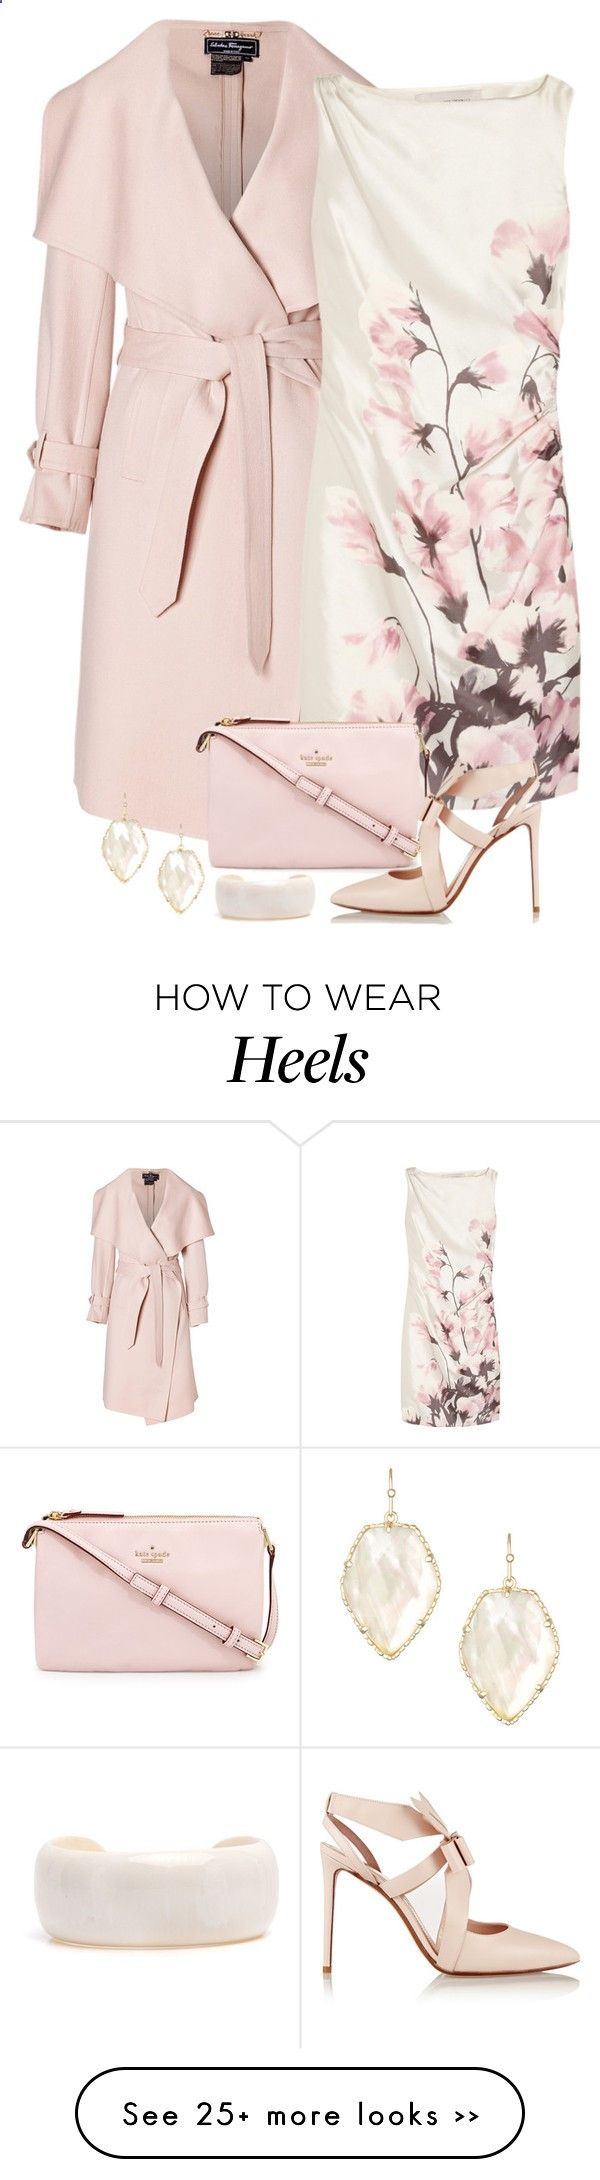 Flowers and Heels by terry-tlc on Polyvore